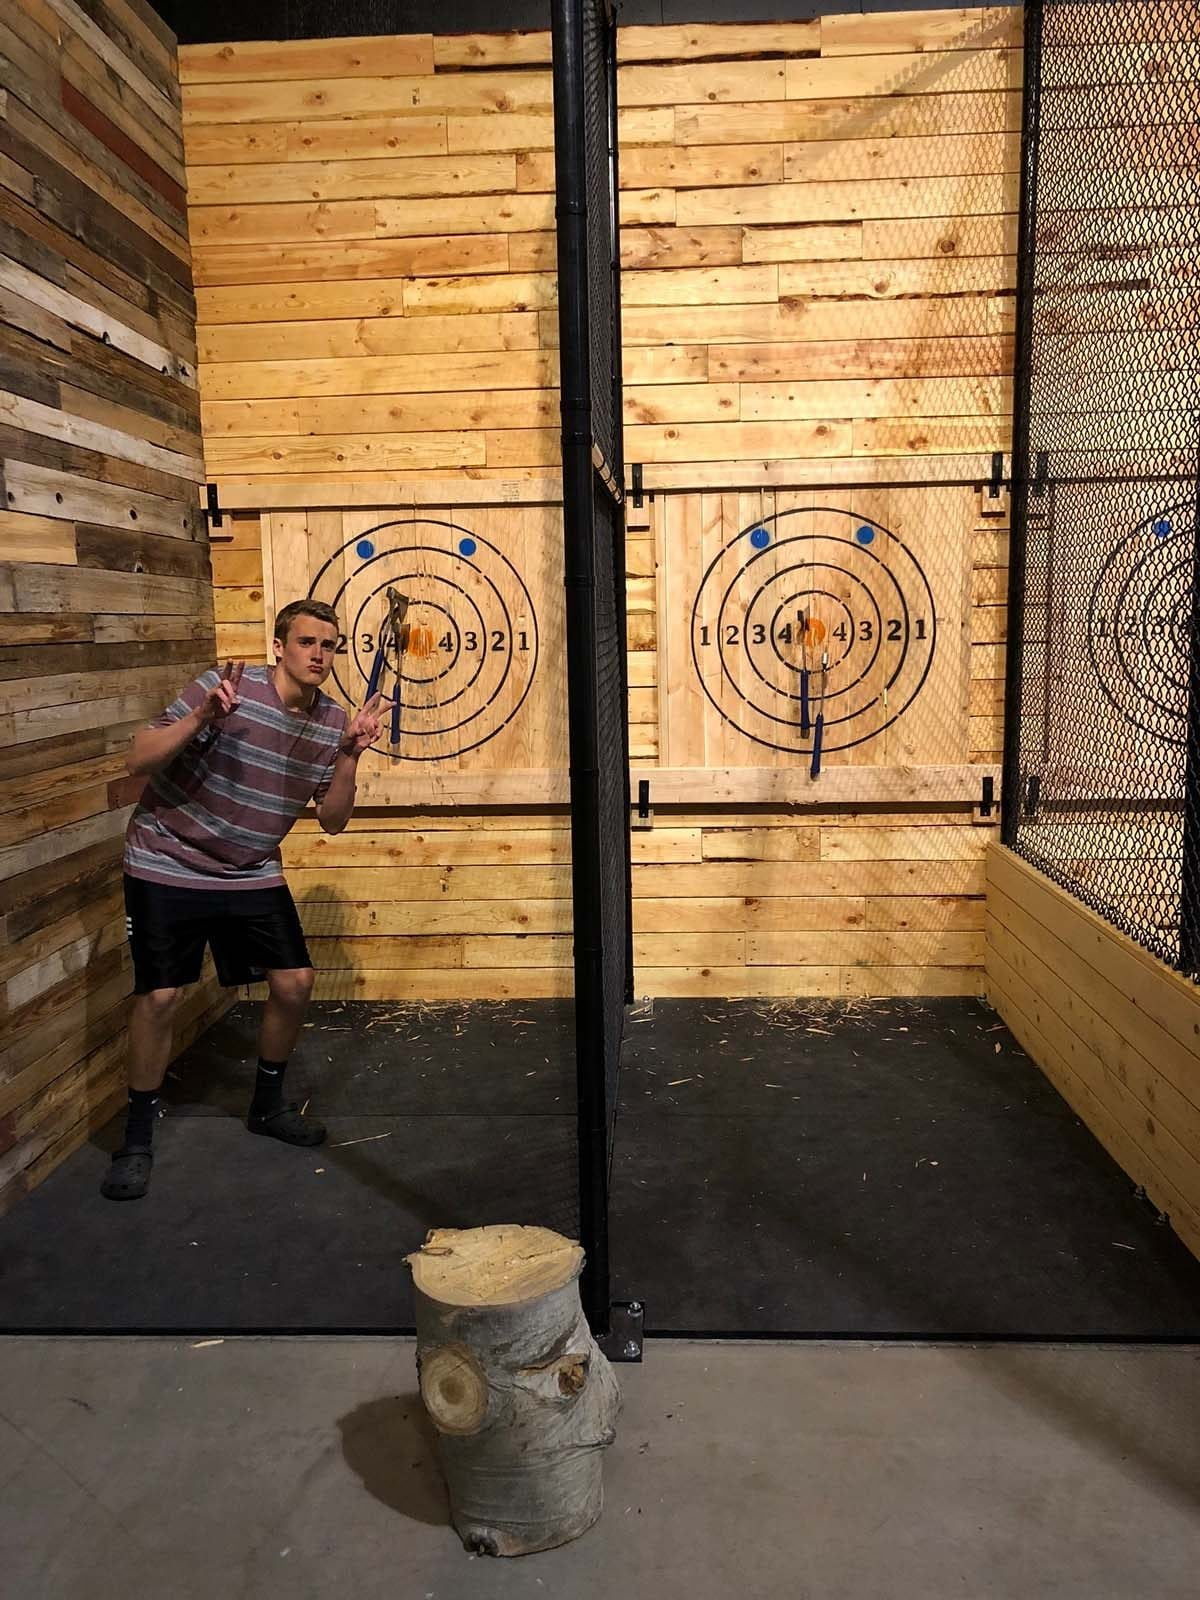 is axe throwing safe?